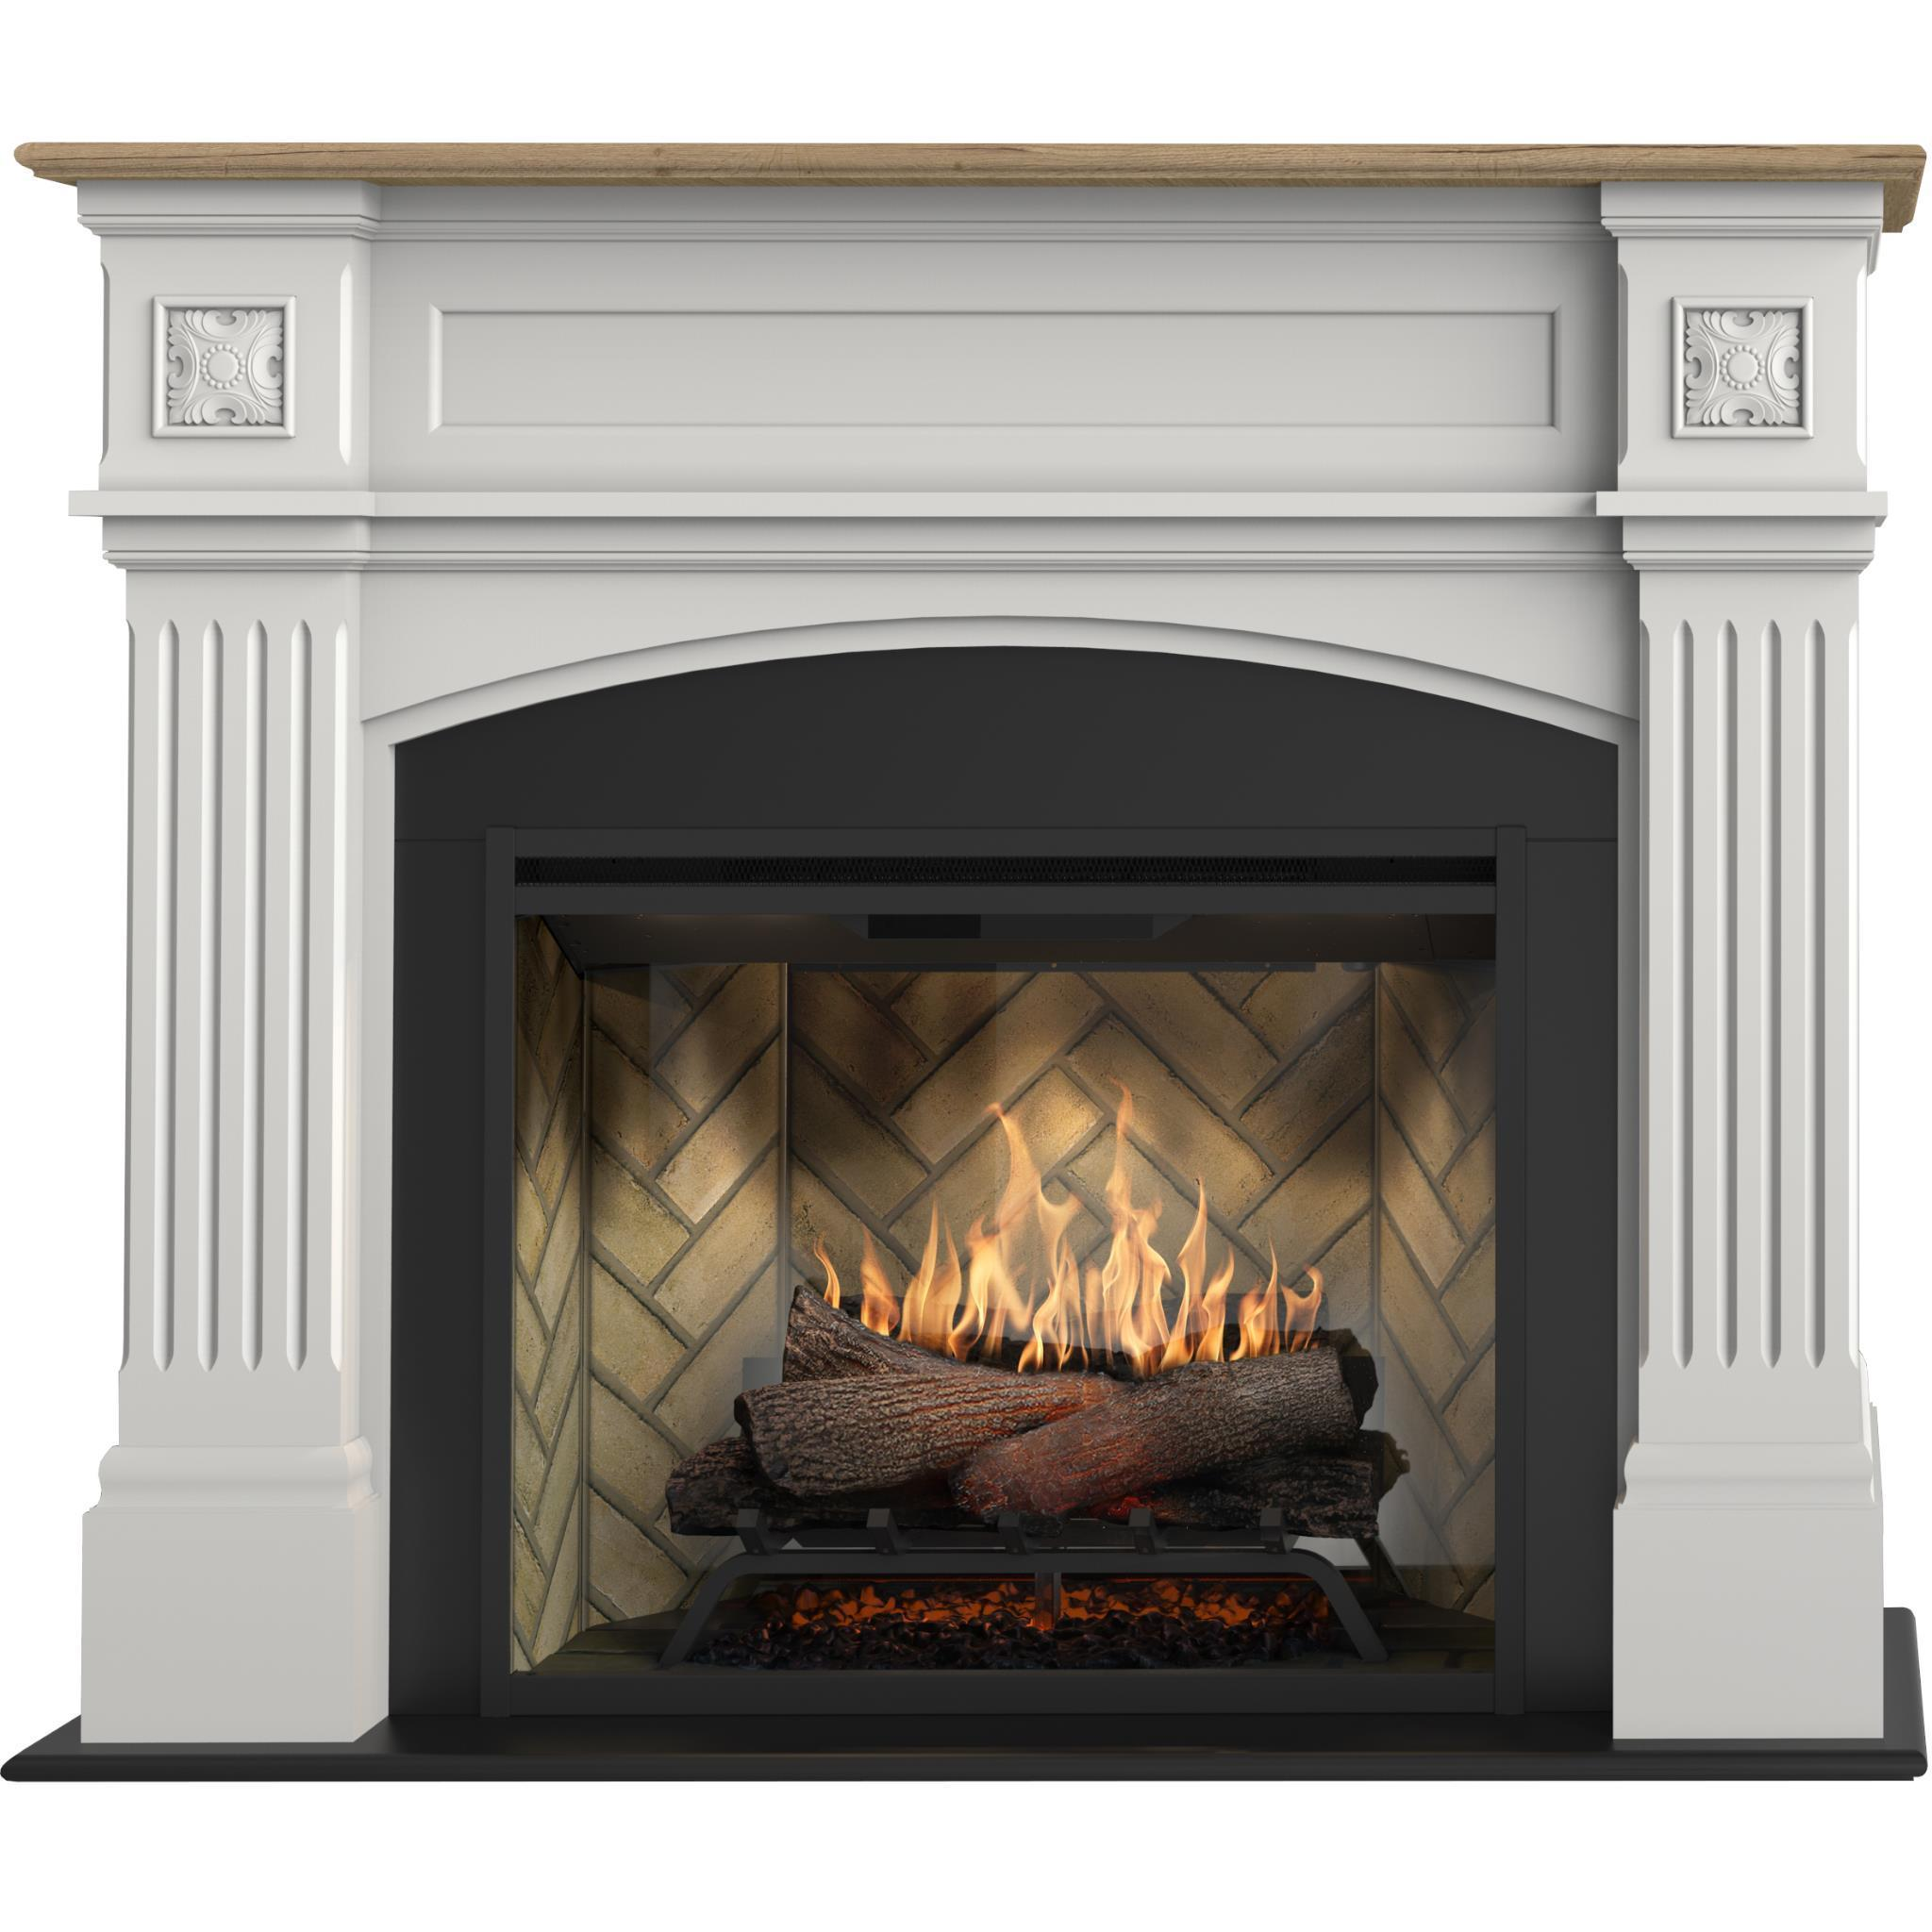 Dimplex Windelsham 2kW Revillusion Suite Electric Fireplace with Mantel